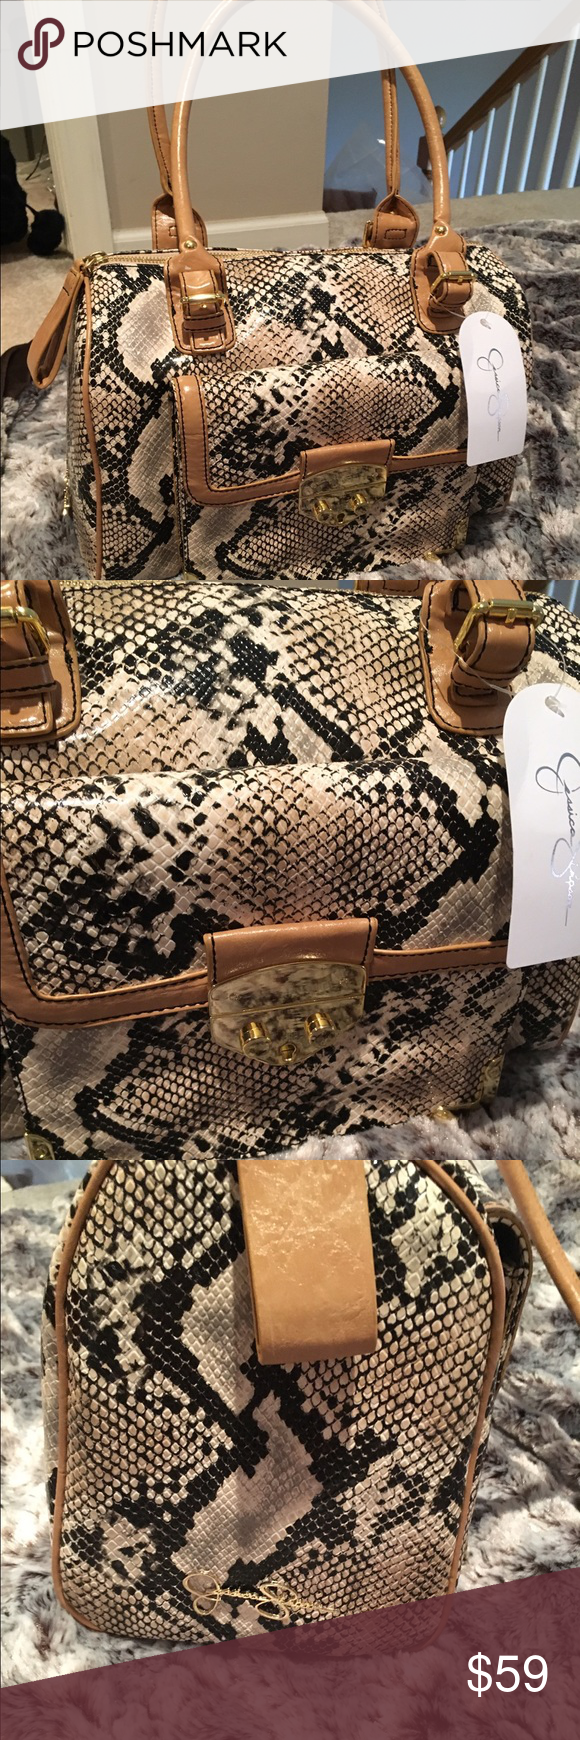 🎀New Jessica Simpson Snakeskin Satchel🎀 Beautiful Large Jessica Simpson Satchel. New with Tags. This bag is beautiful and unique. Great Christmas gift. Jessica Simpson Bags Satchels